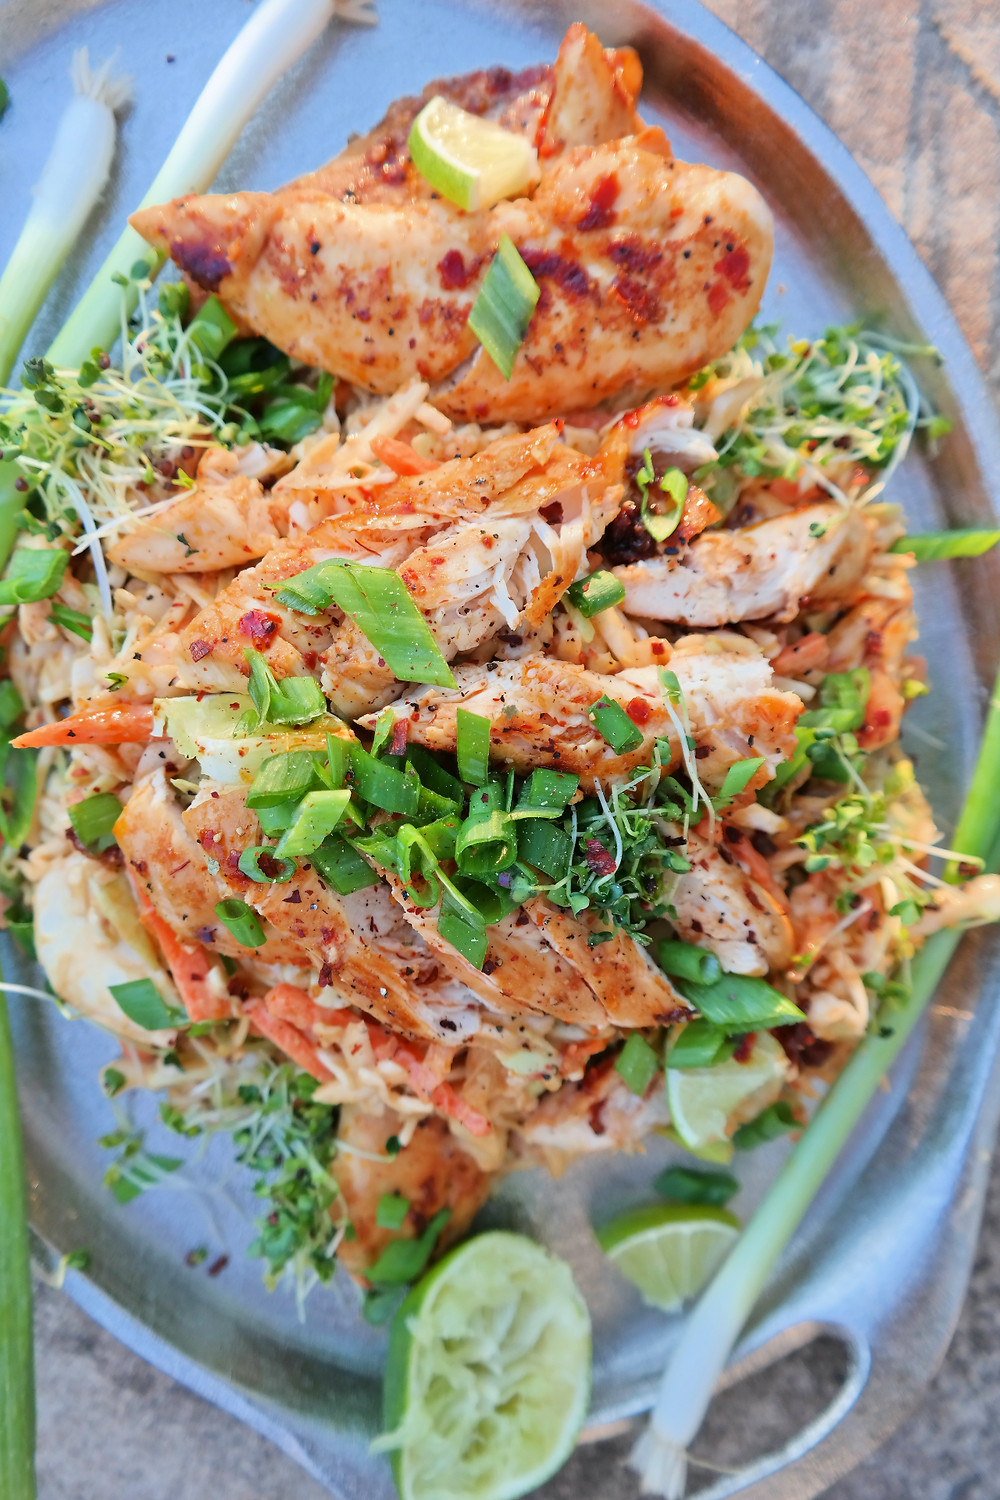 Thai Chicken Salad with Spicy Peanut Sauce | eatlovegarlic.com @eatlovegarlic